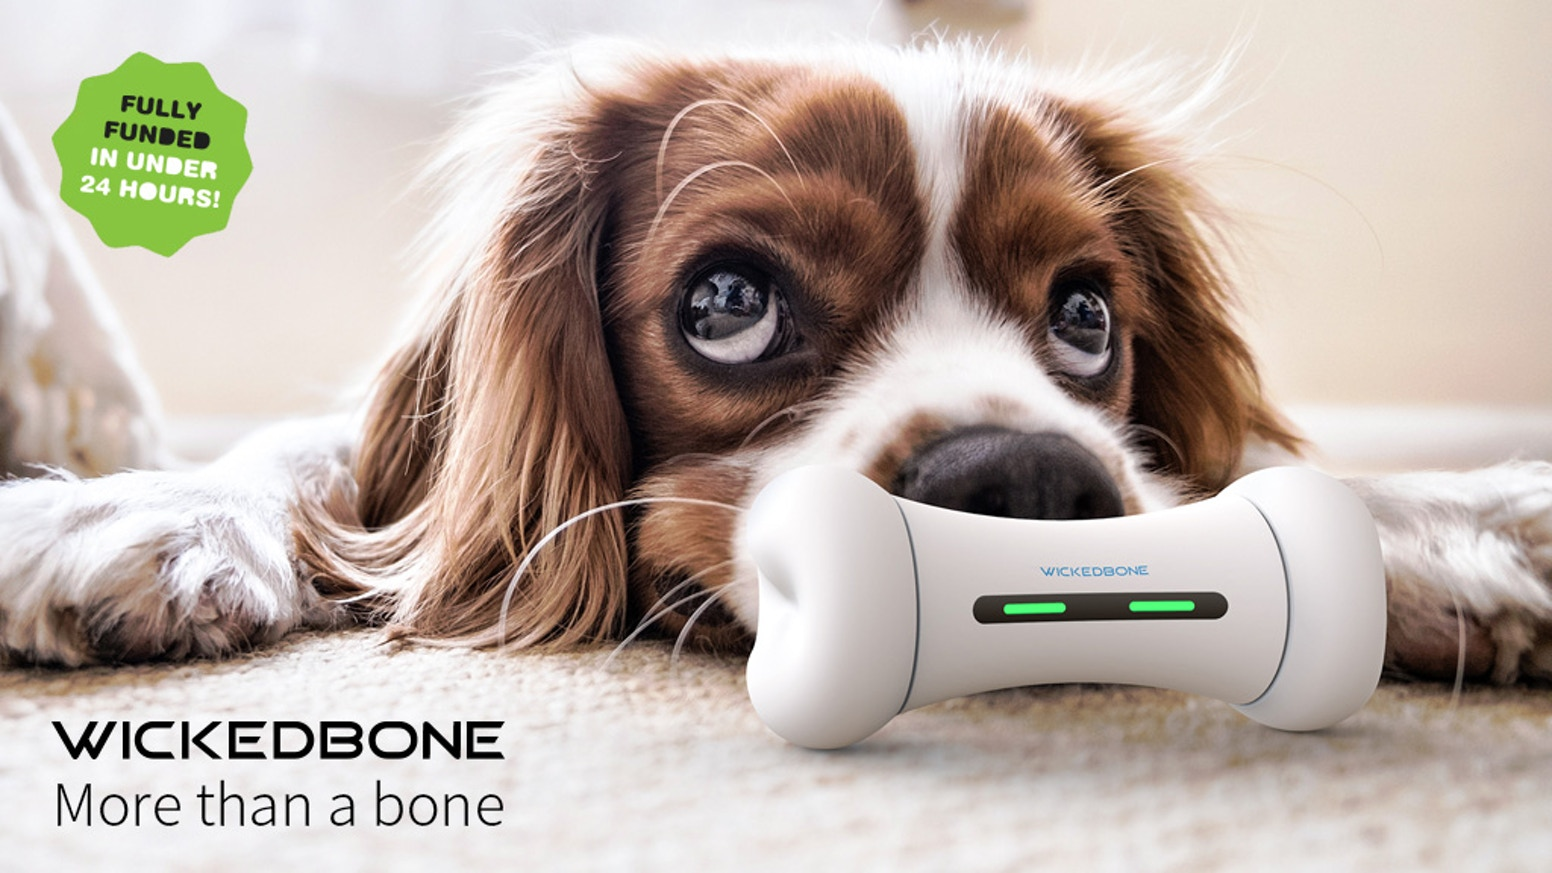 WICKEDBONE: World's First Smart & Interactive Dog Toy is the top crowdfunding project launched today. WICKEDBONE: World's First Smart & Interactive Dog Toy raised over $91306 from 933 backers. Other top projects include PIXU TABLE™ - LEGO® Compatible table with 23 color blocks, Good Vibes Only, Webseries development - Safety R.O.C.K.S. Live!...